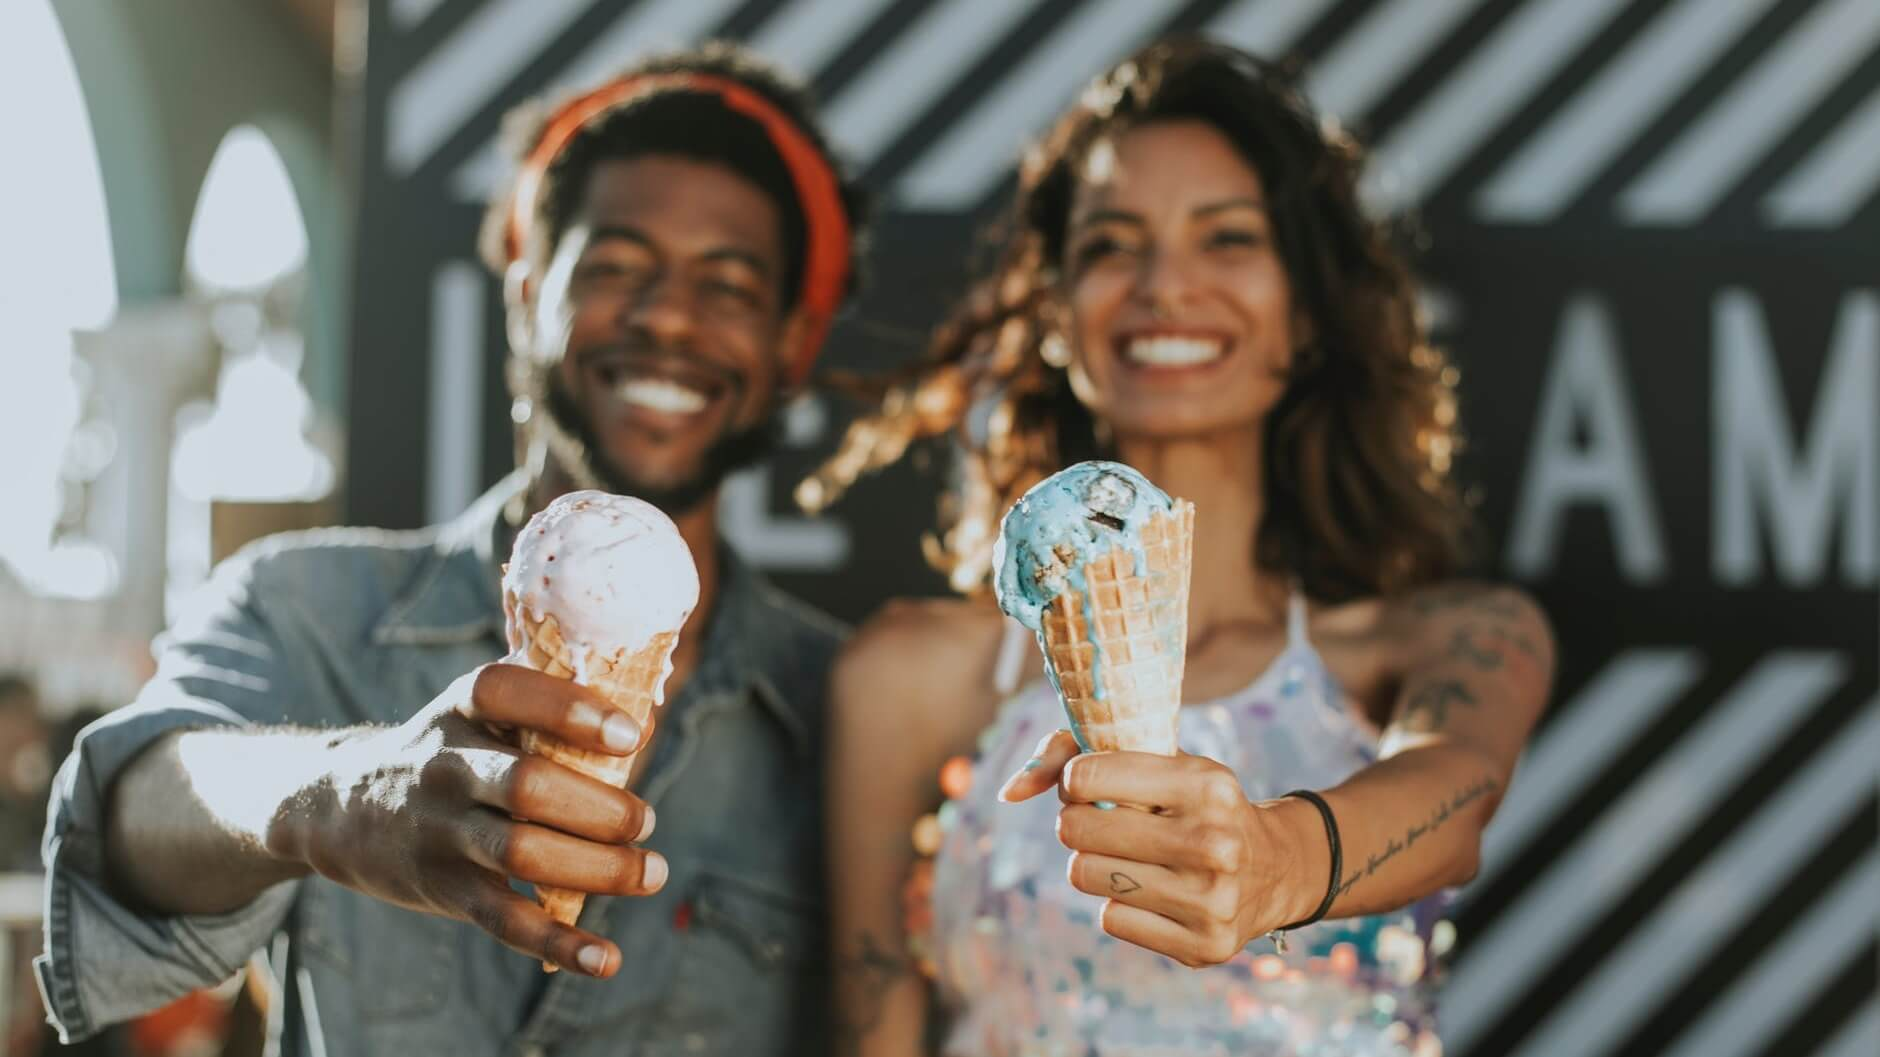 A Vegan and 100% Plastic-Free Ice Cream Shop Arrives in Miami